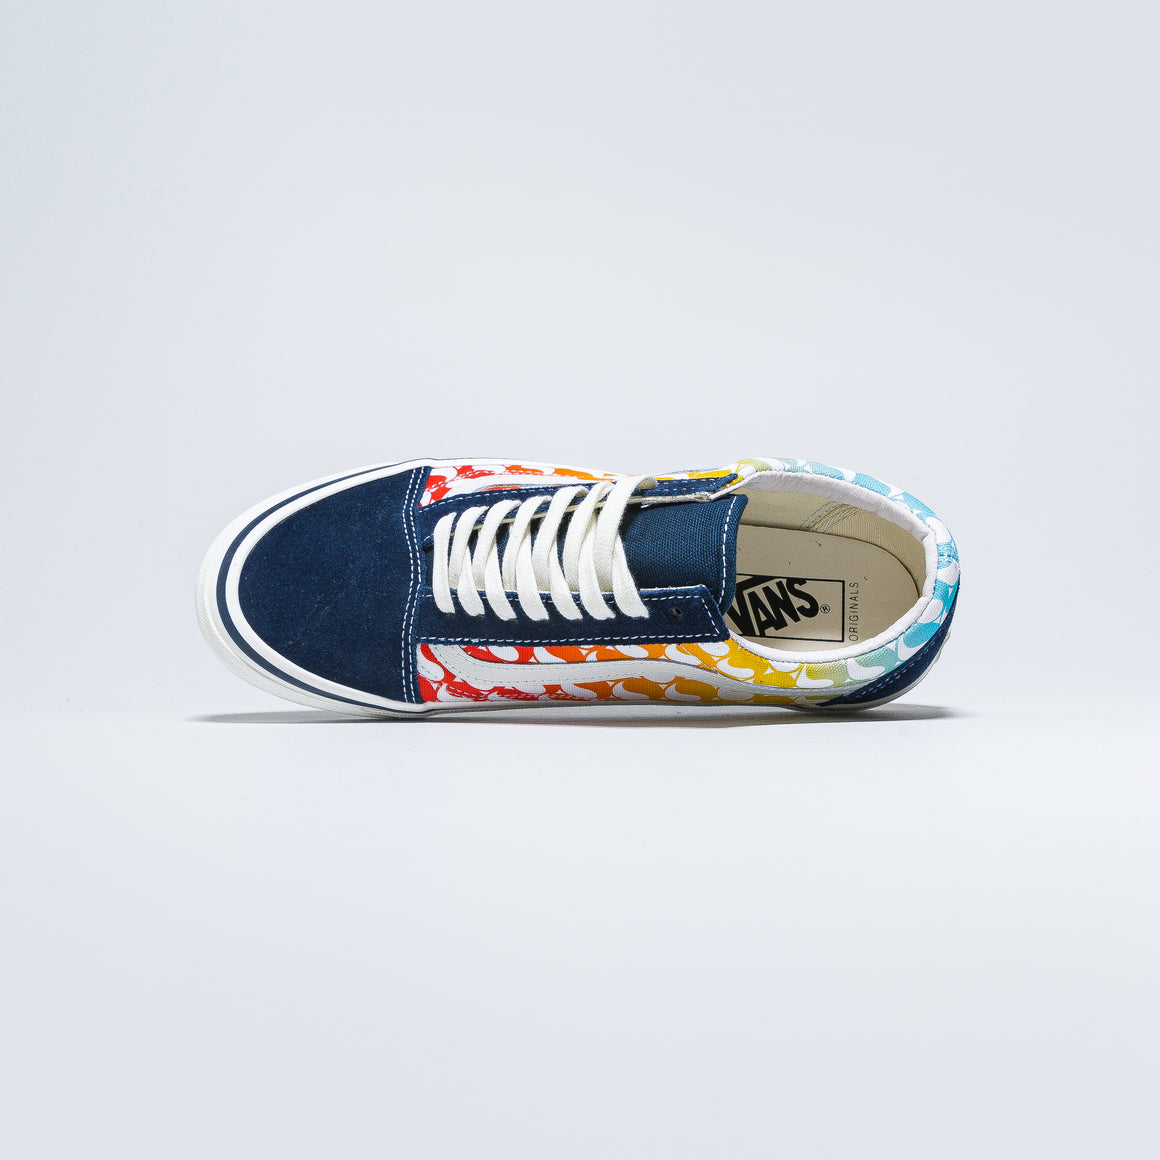 Vans - OG Old Skool LX x Free & Easy - Ying Yang - Up There